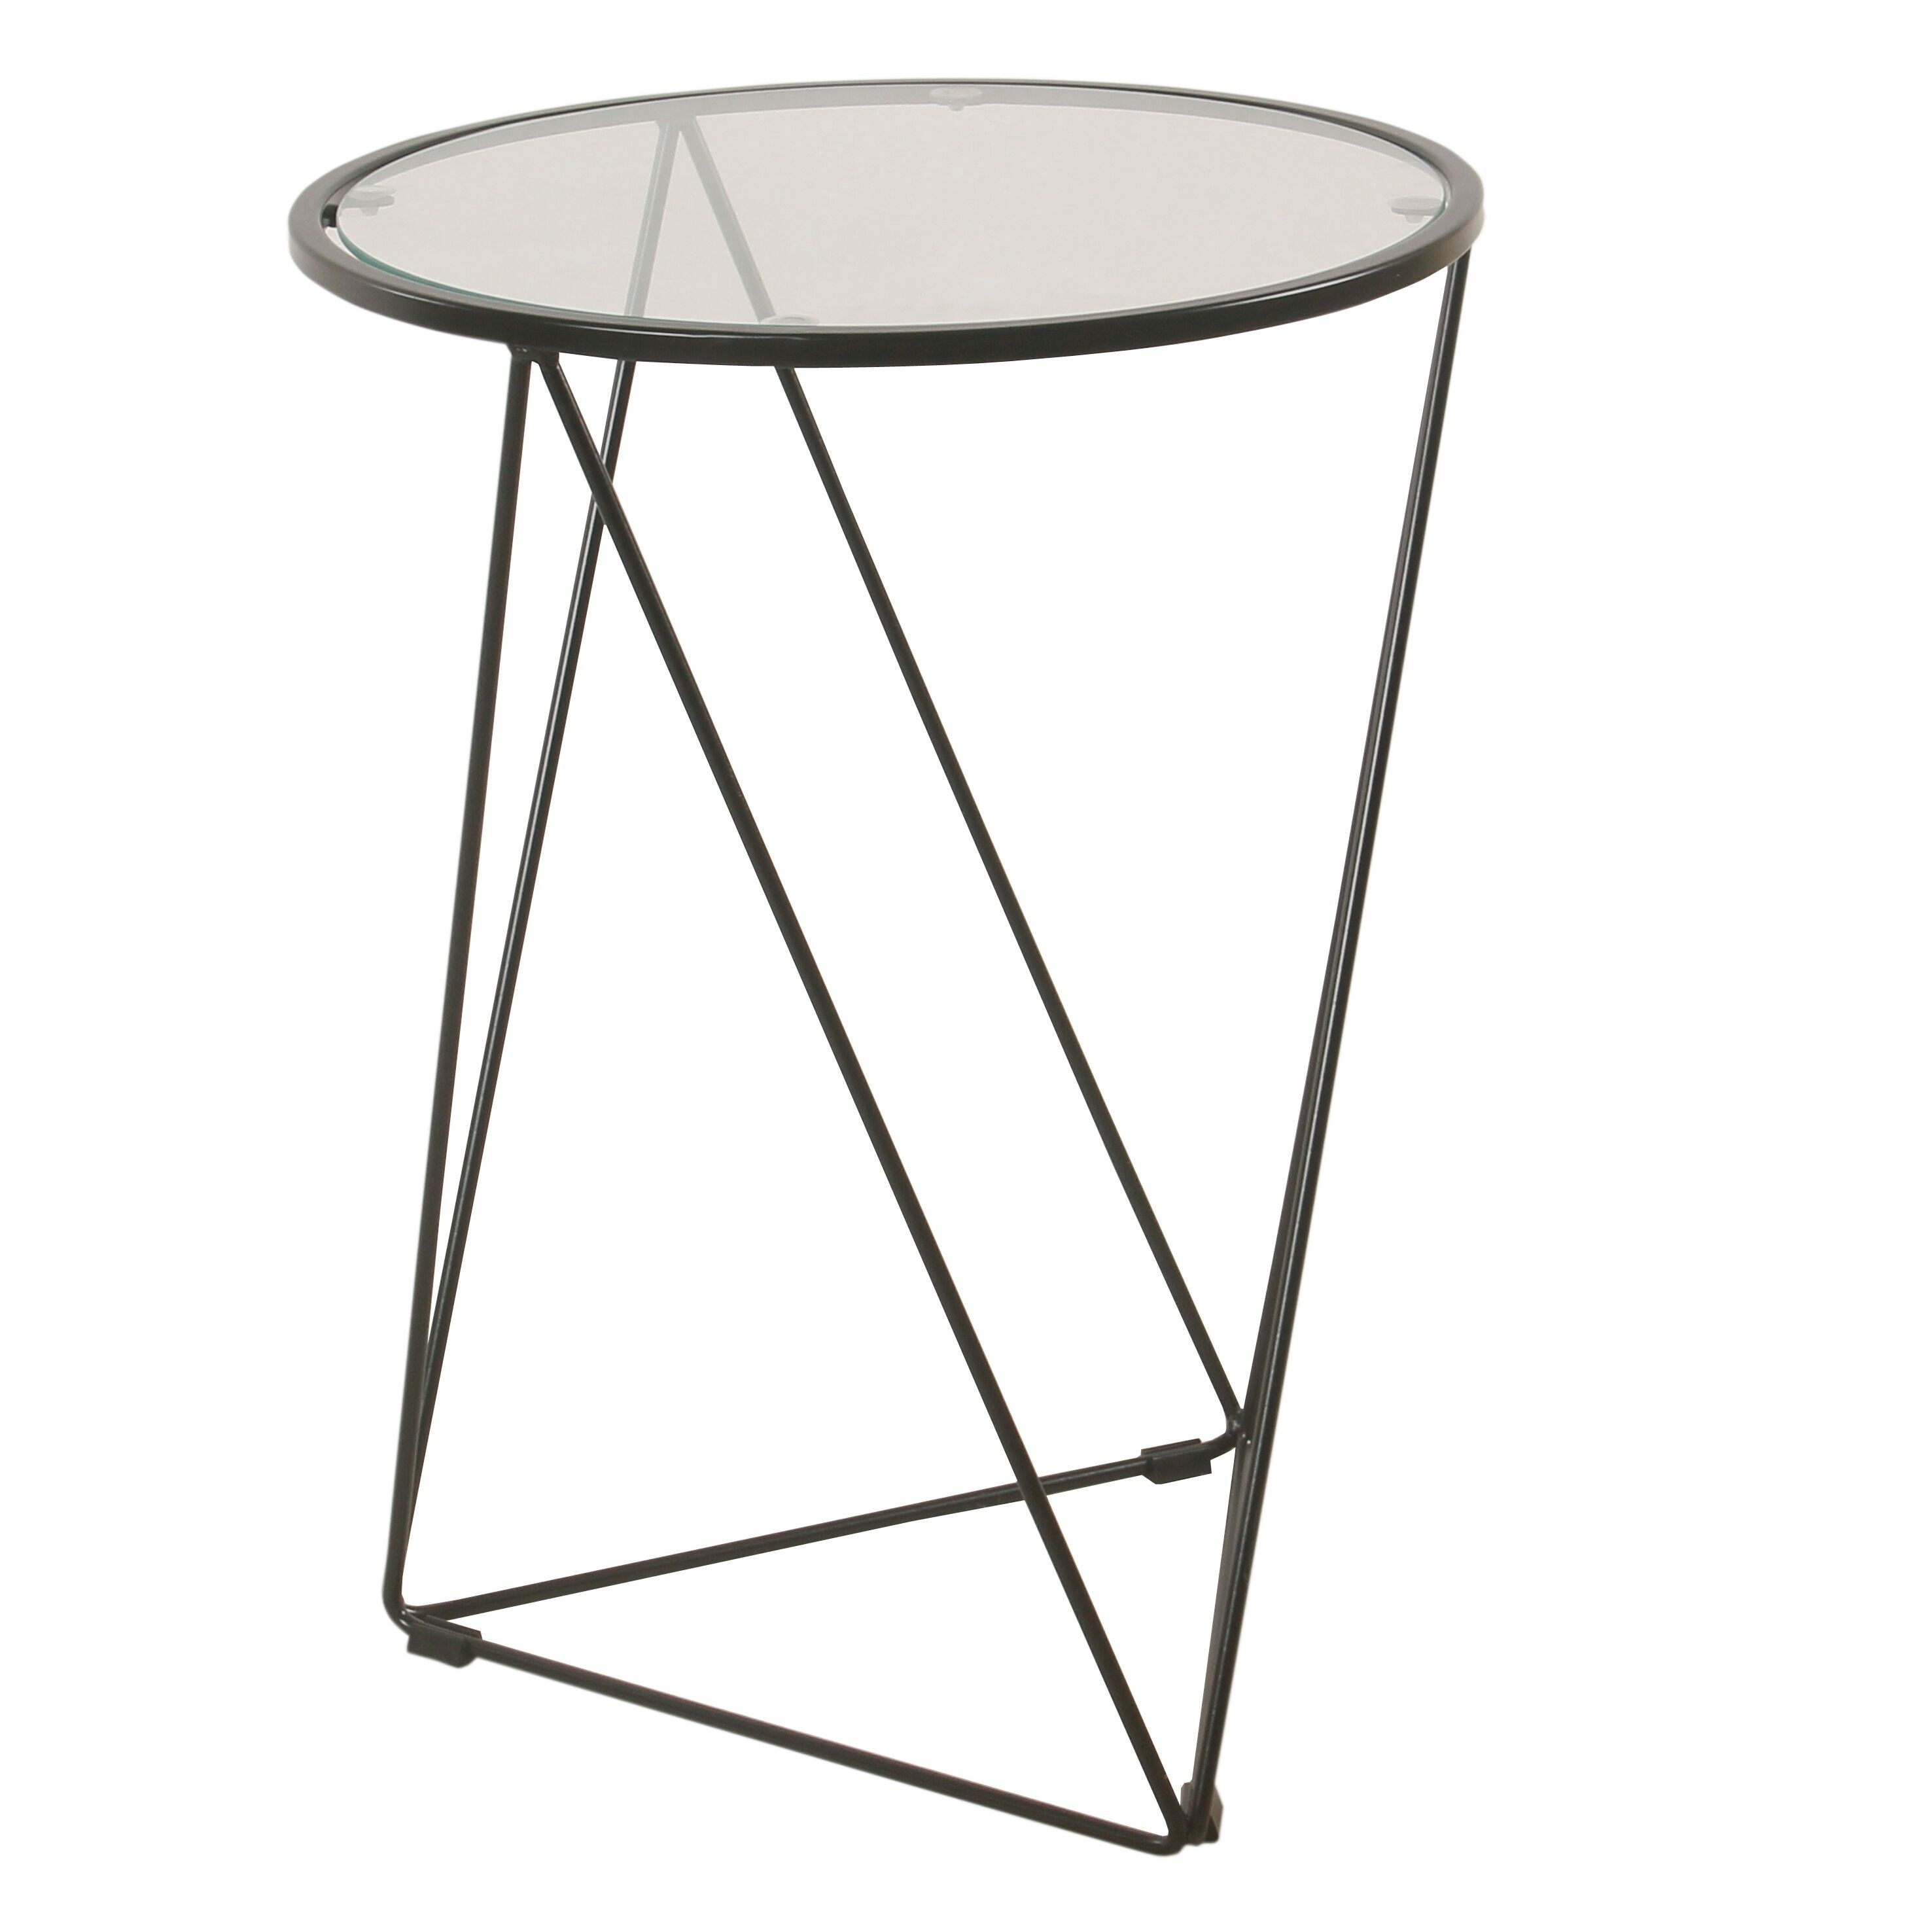 Homepop Metal Accent Table Triangle Gold Base Round Gl Top On Free Shipping Today 20603769